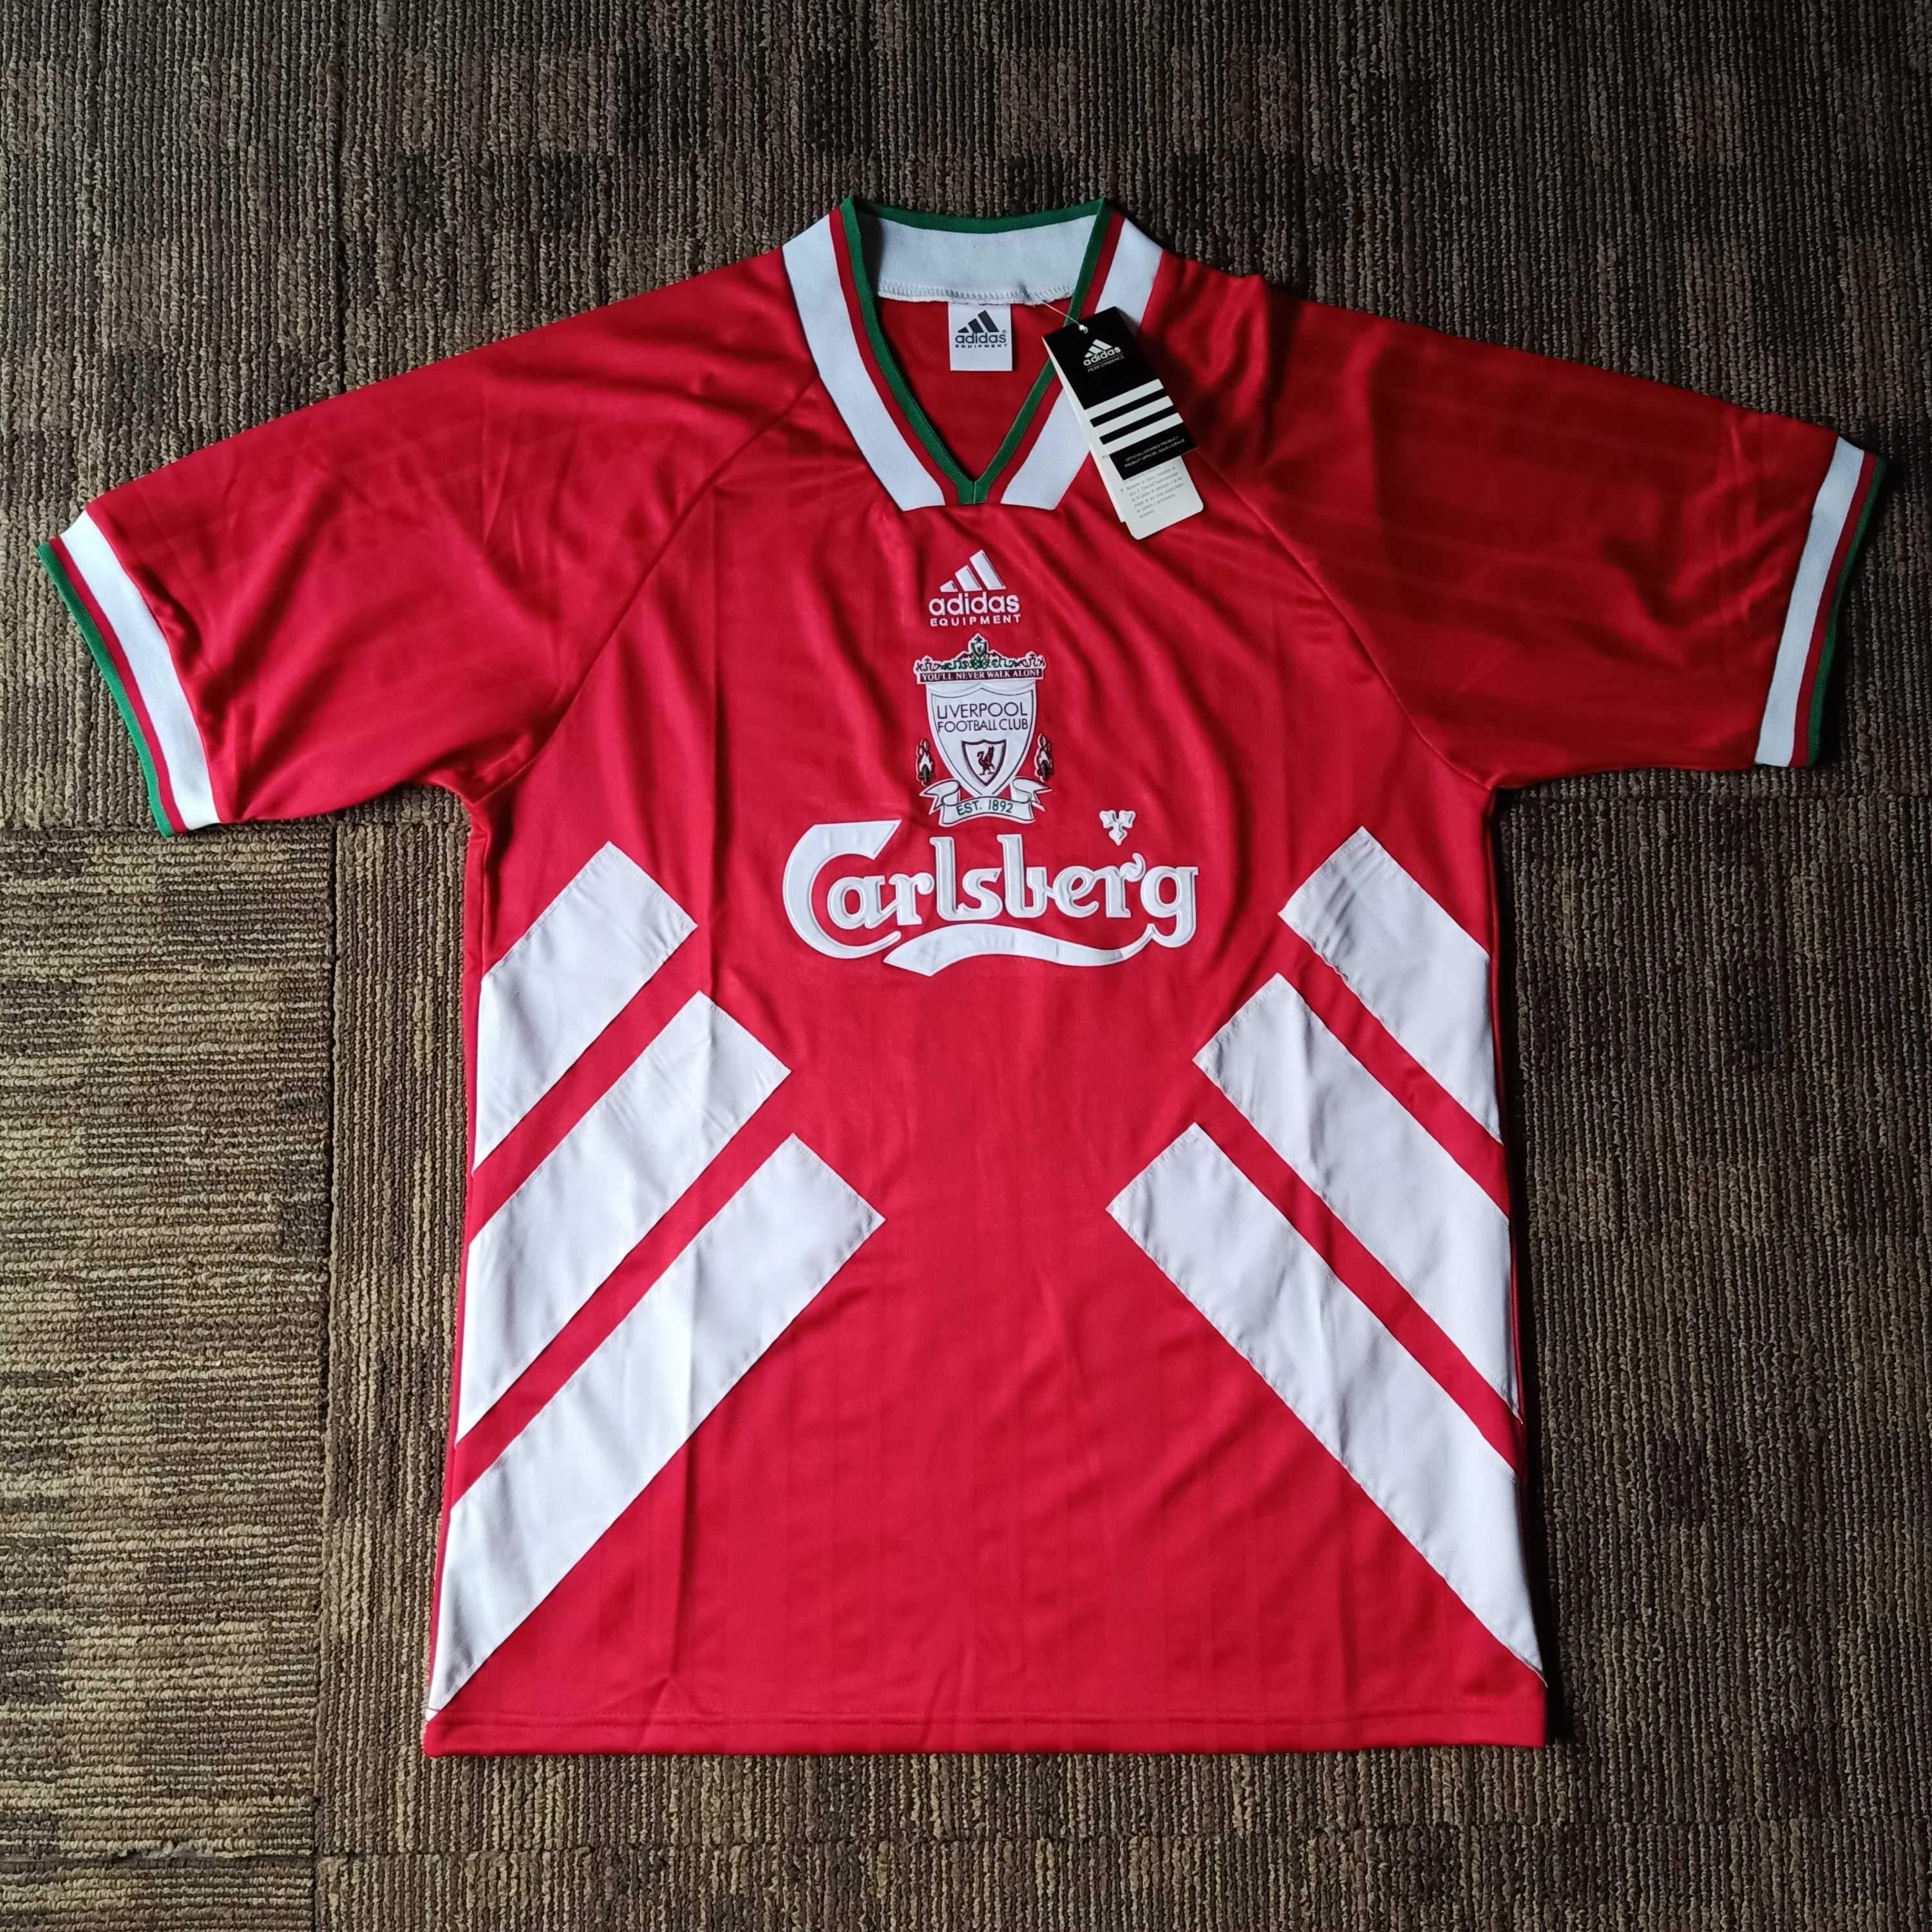 1993 95 Liverpool Home Shirt In 2020 Classic Football Shirts Liverpool Home Vintage Football Shirts